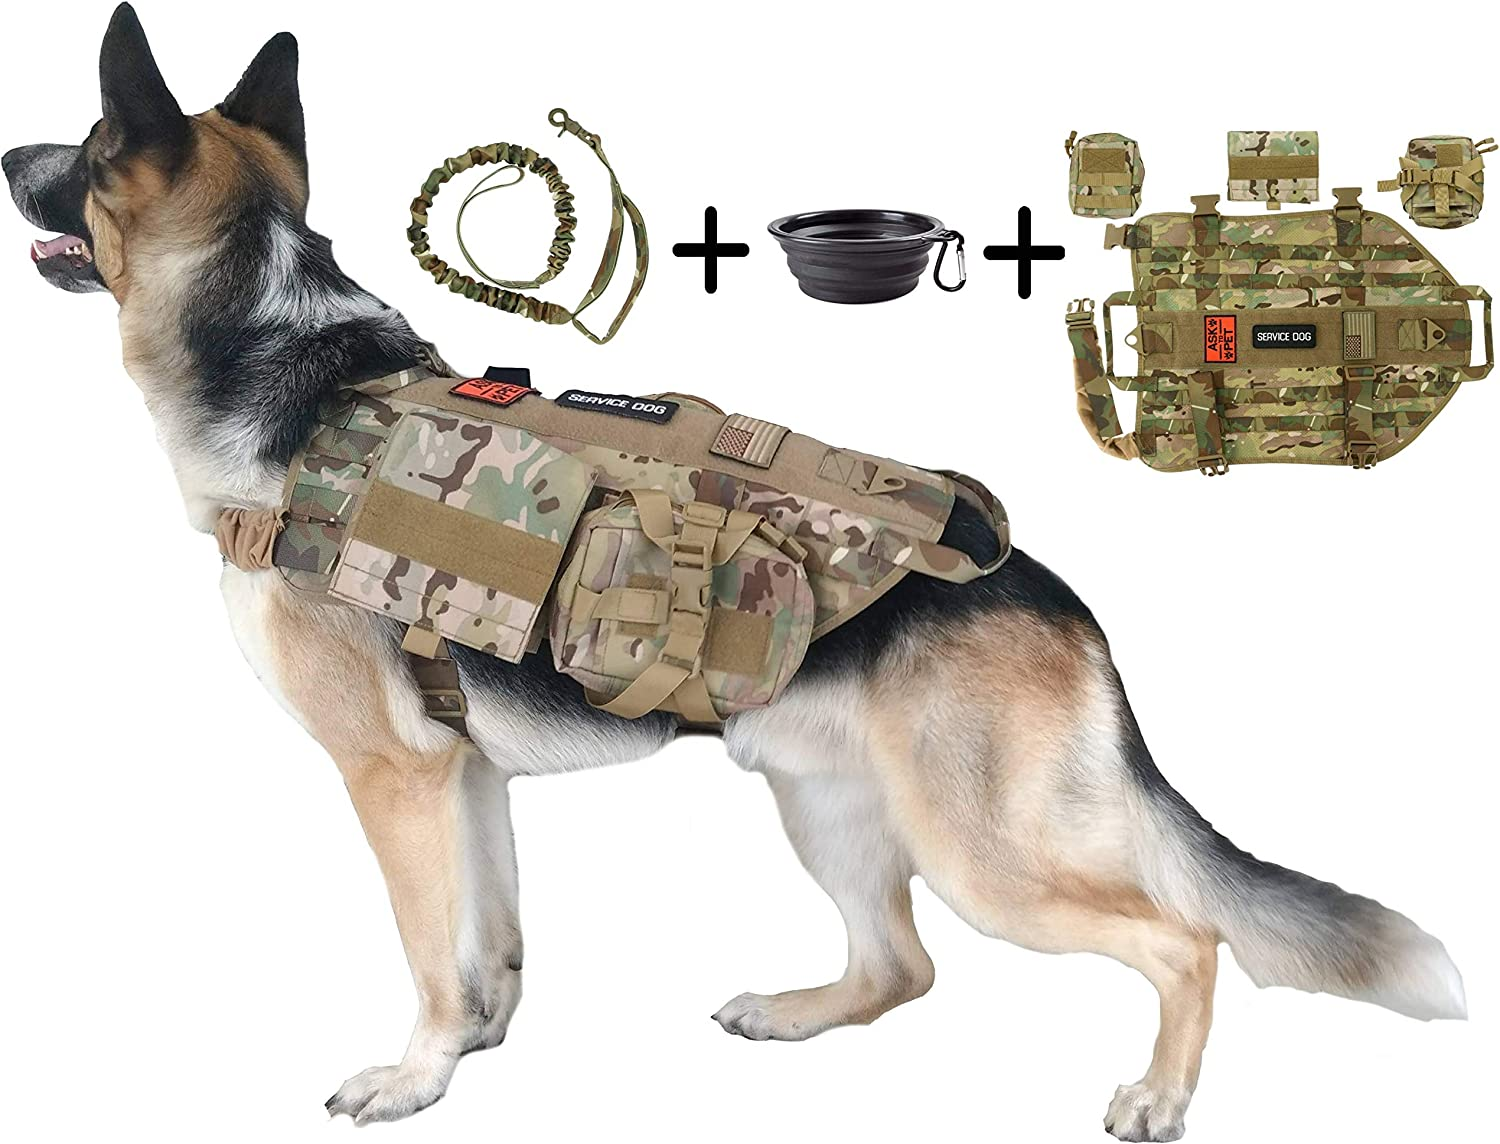 B07CSGWGN6 Tri Cloud Sports Dog Tactical Harness – 1000D Nylon Molle Vest Includes Leash | 3 Pouches | 3 Patches | Collapsible BPA Free Bowl 81%2Bj-gQpxqL